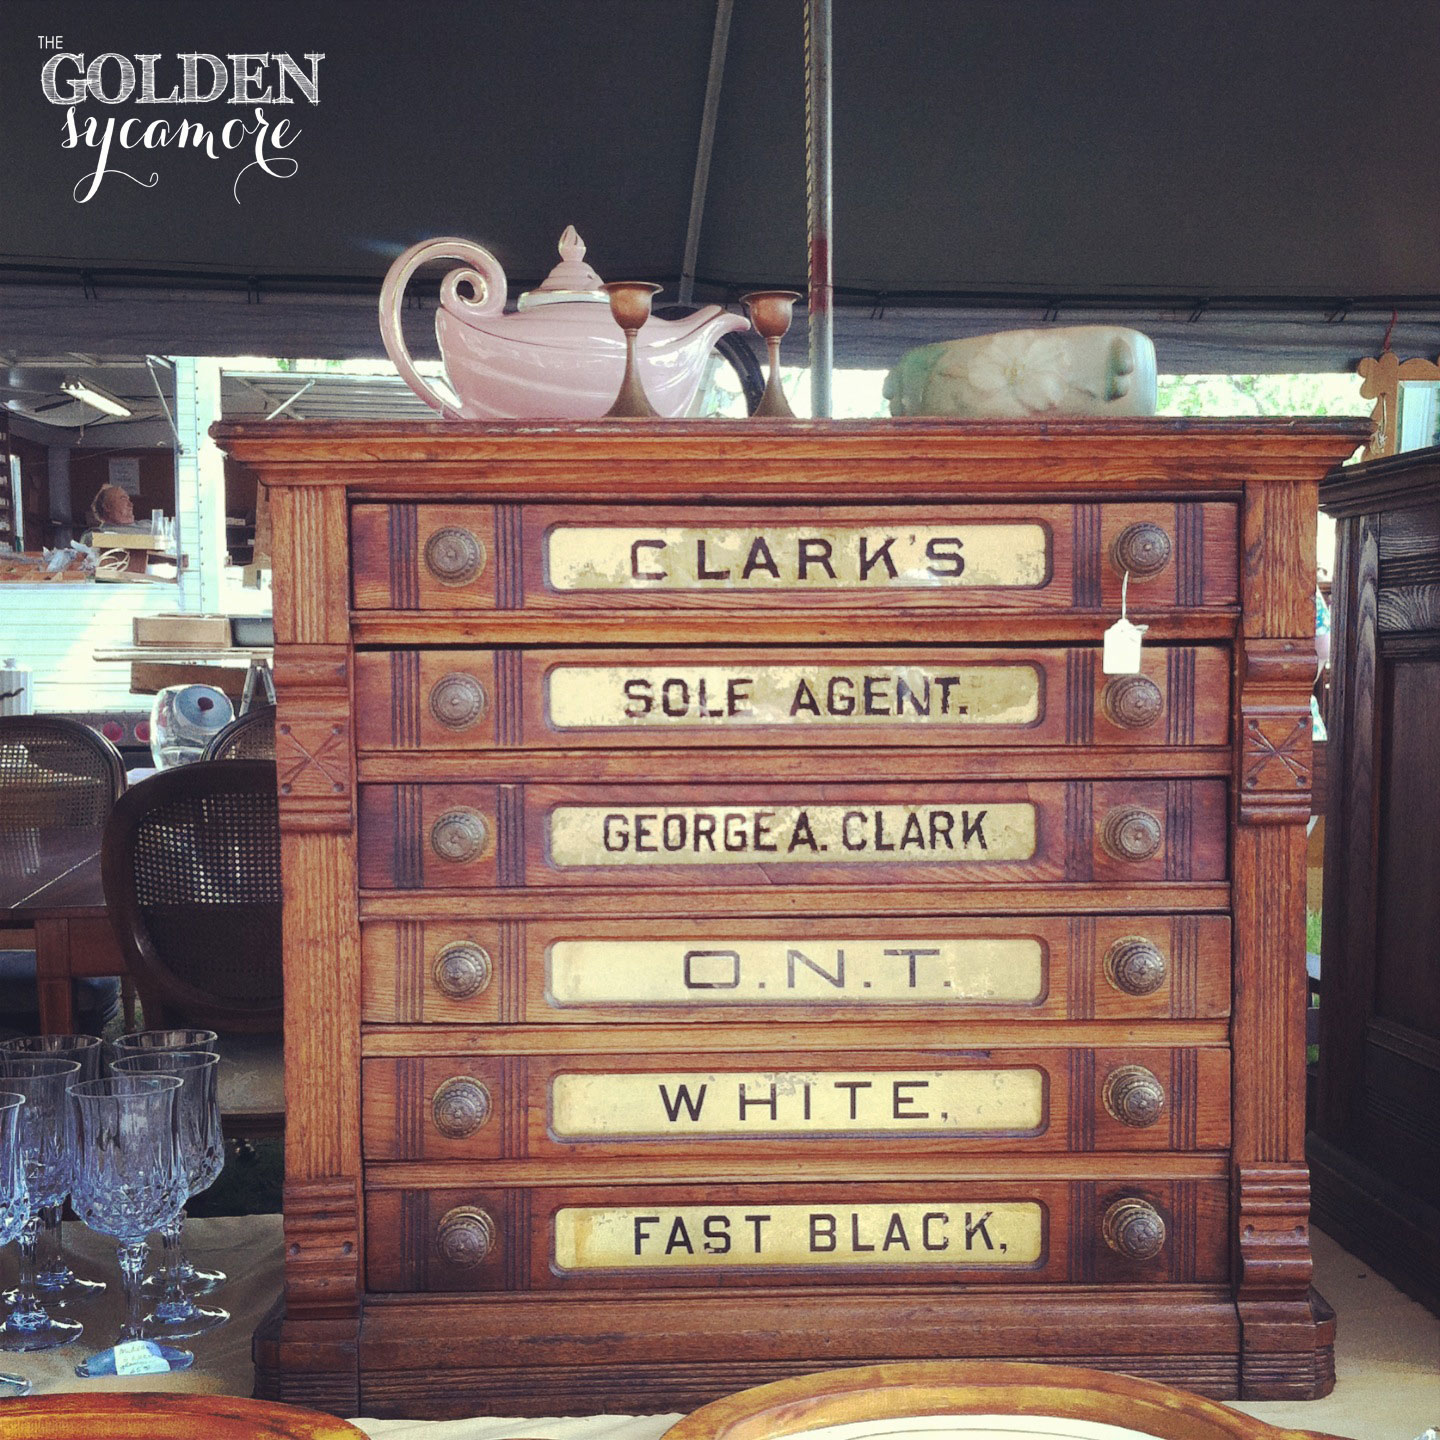 The Golden Sycamore: A Day at the Flea Market